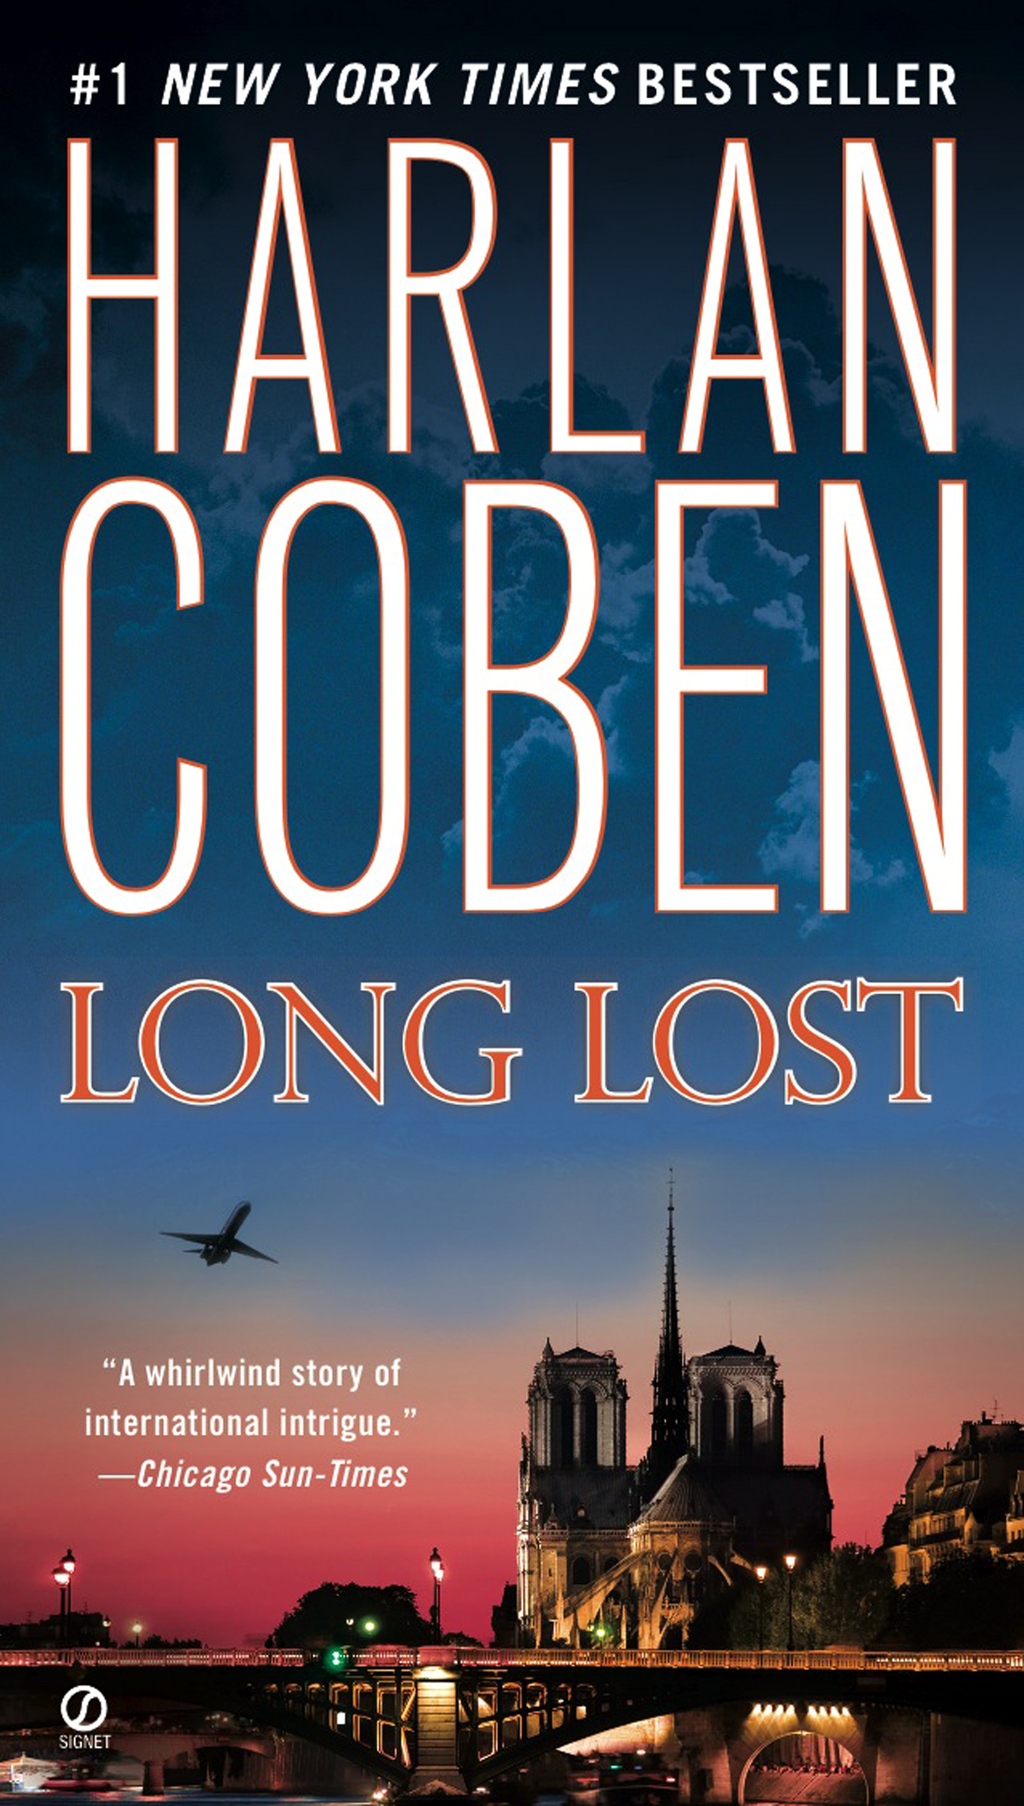 Long Lost By: Harlan Coben